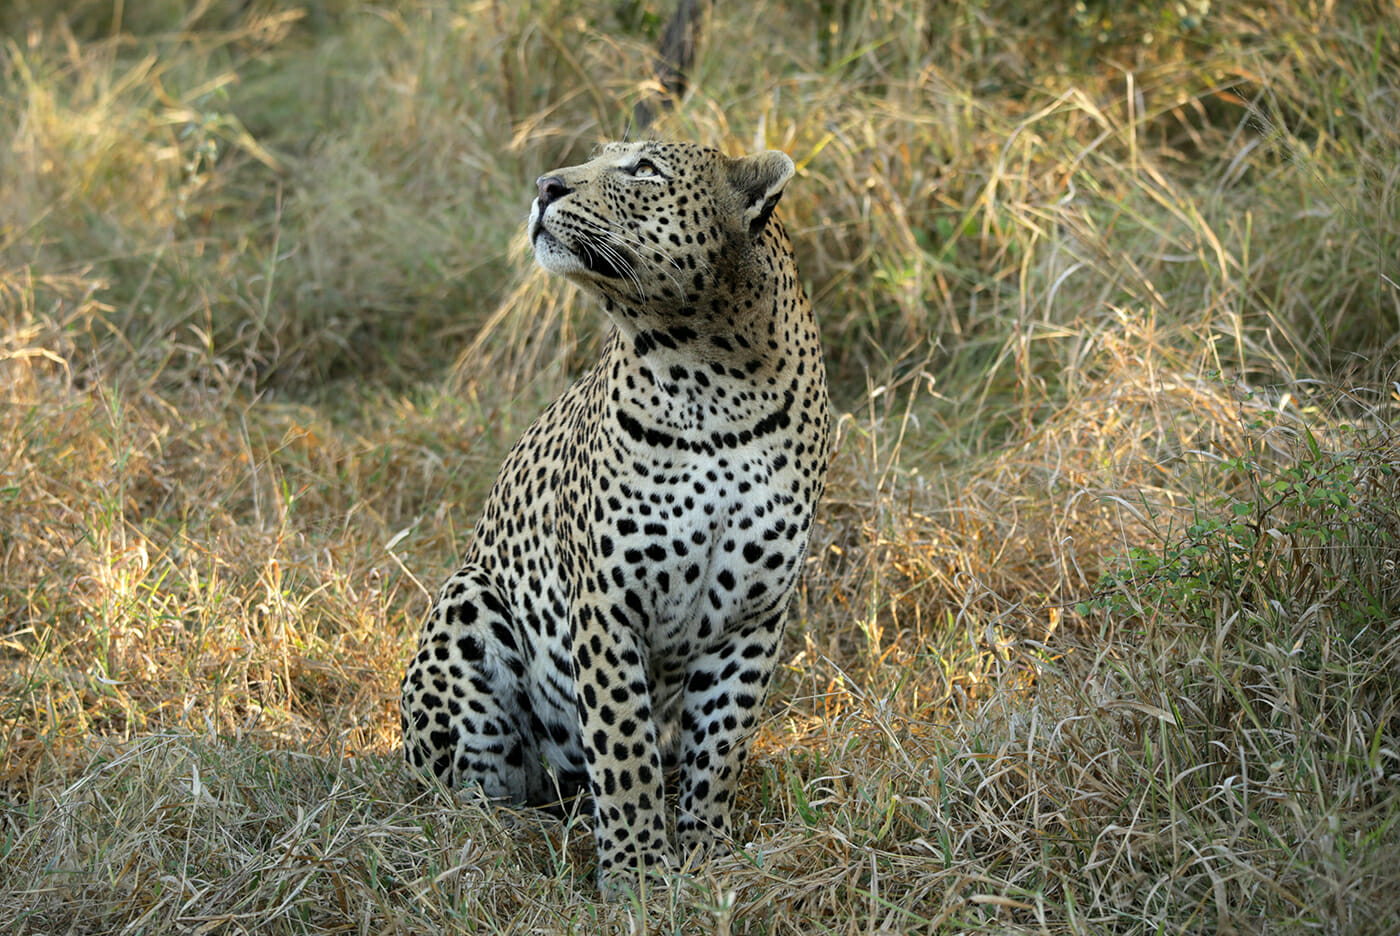 A stunning male leopard taking an early morning stroll. Image by Heléne Ramackers